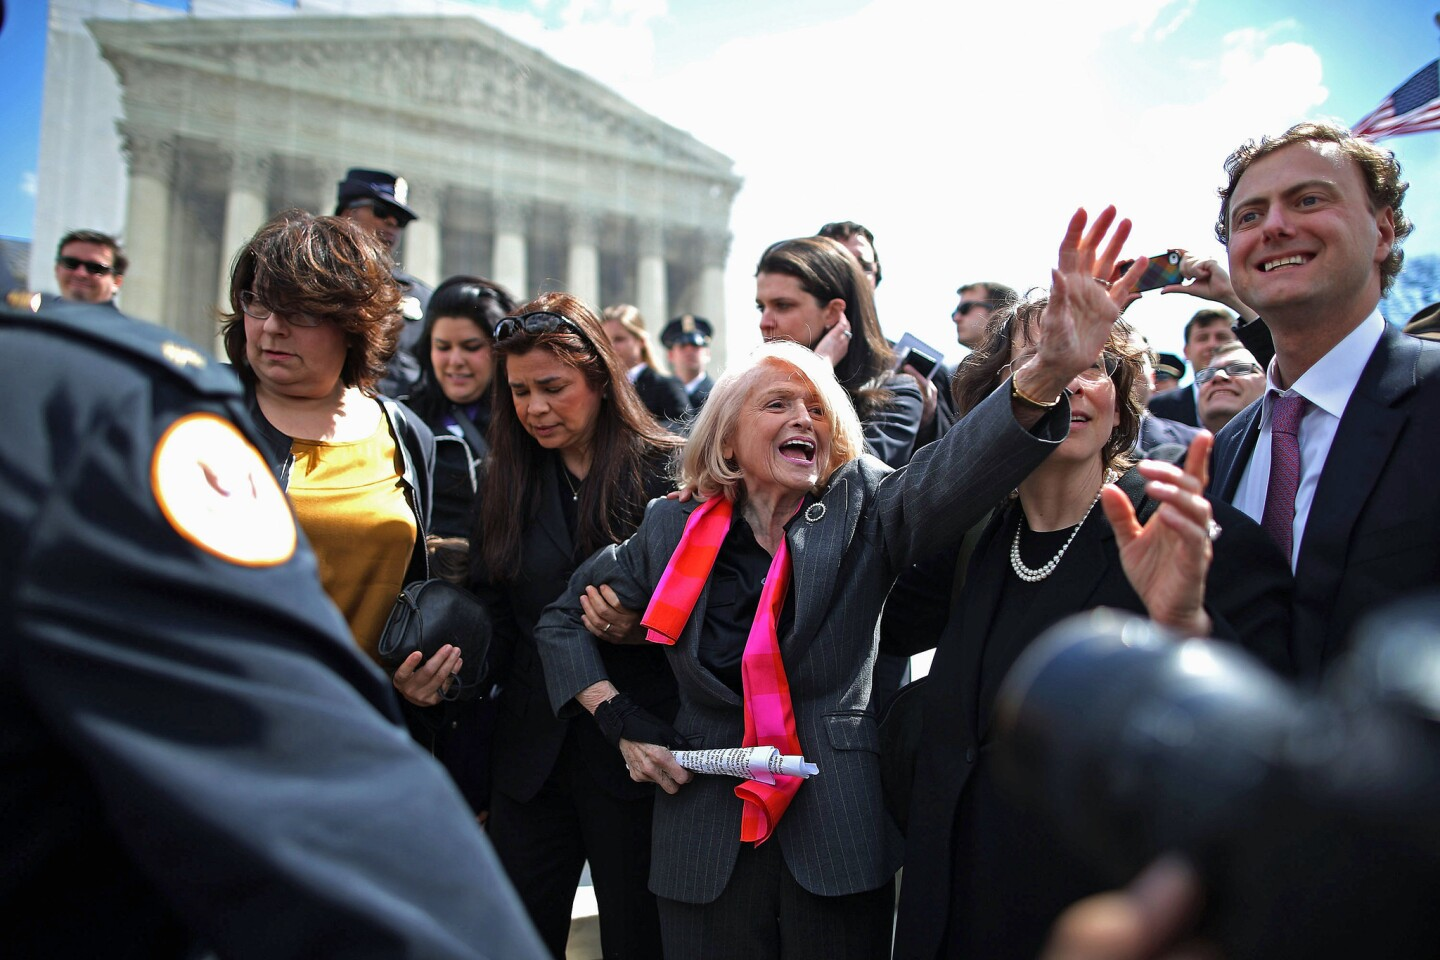 Edith Windsor, 83, is mobbed by journalists and supporters as she leaves the Supreme Court on Wednesday. Windsor brought the case challenging the constitutionality of the federal Defense of Marriage Act.